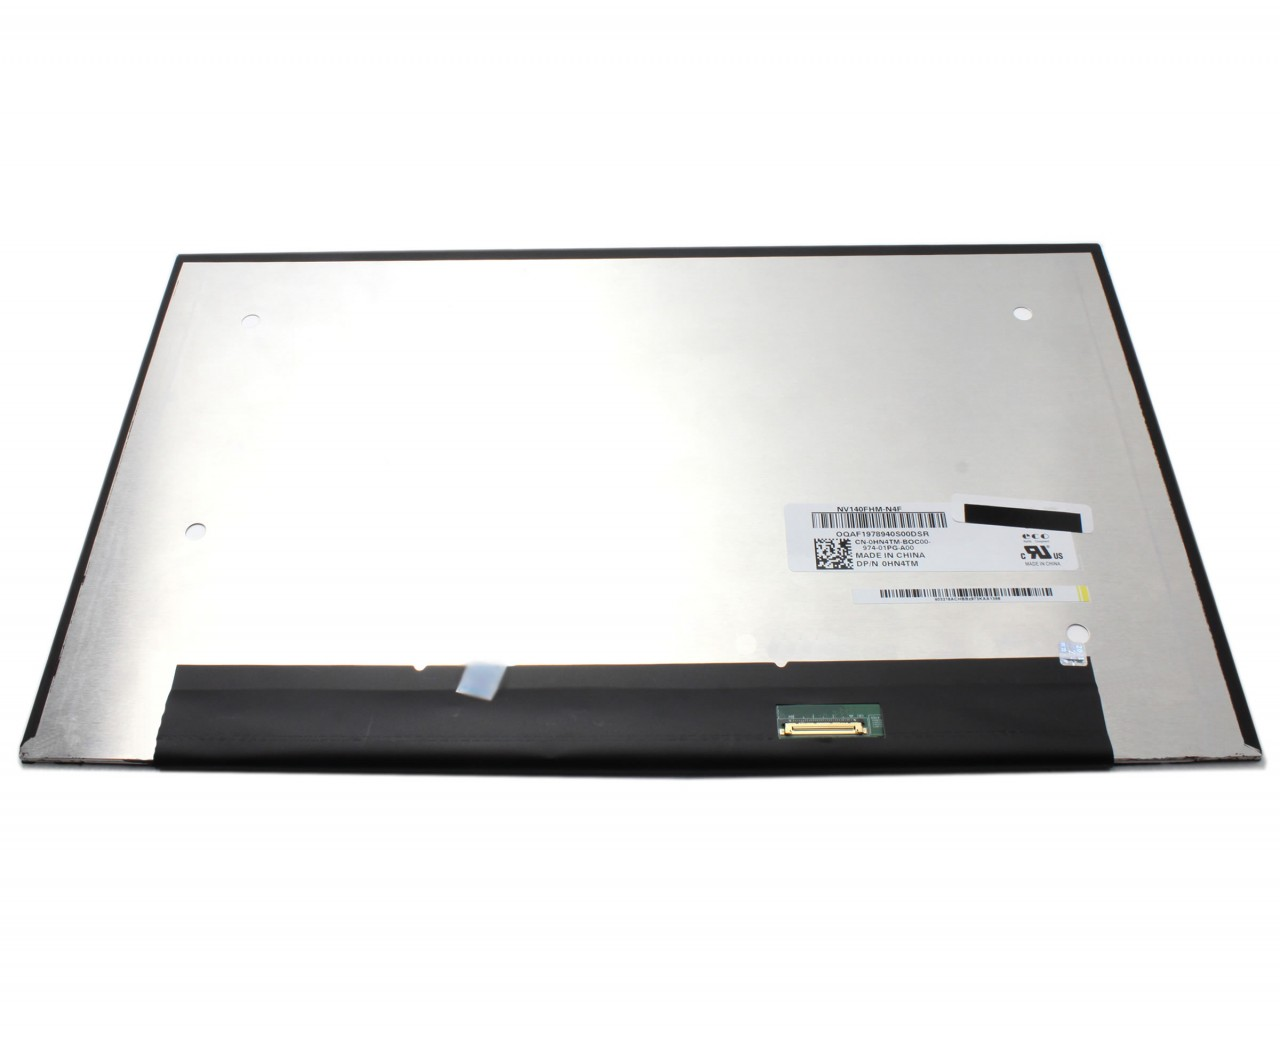 Display laptop Dell Latitude 5401 Ecran 14.0 1920x1080 30 pinni eDP imagine powerlaptop.ro 2021